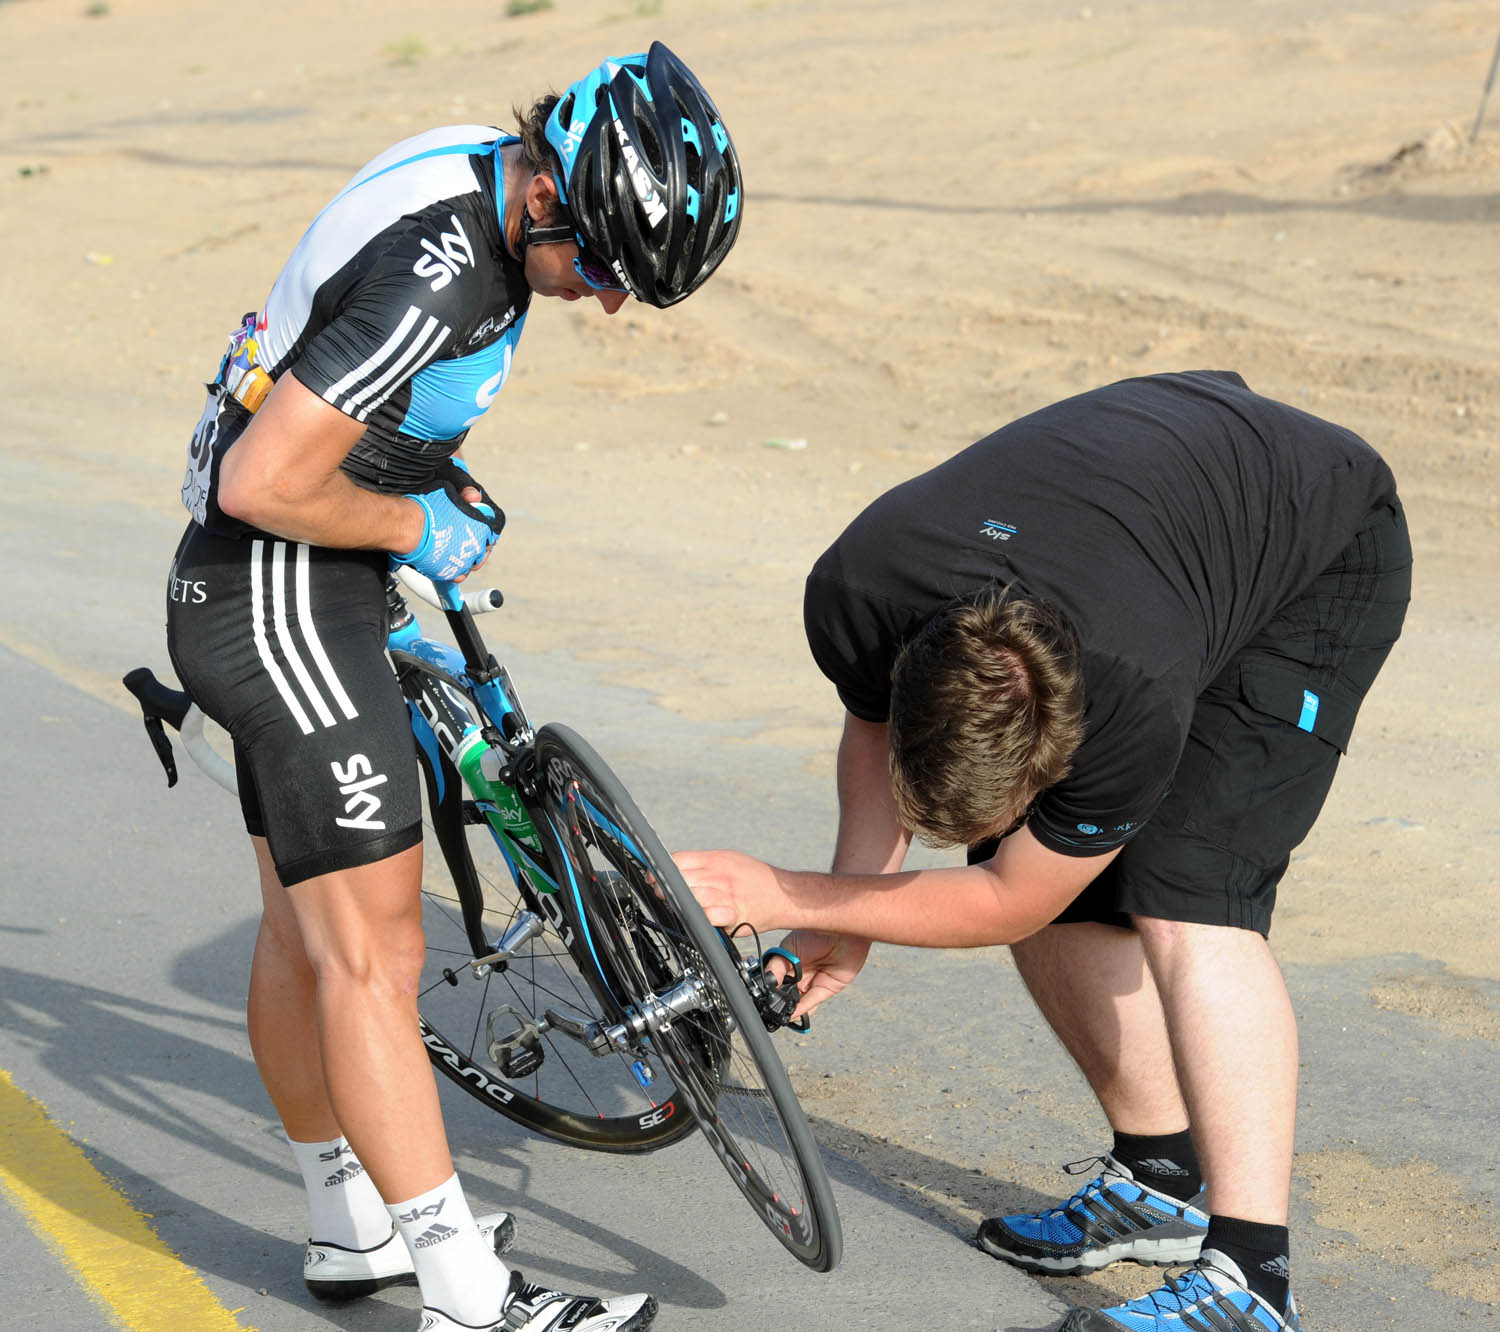 Russell Downing trouble, Tour of Oman 2011, stage three